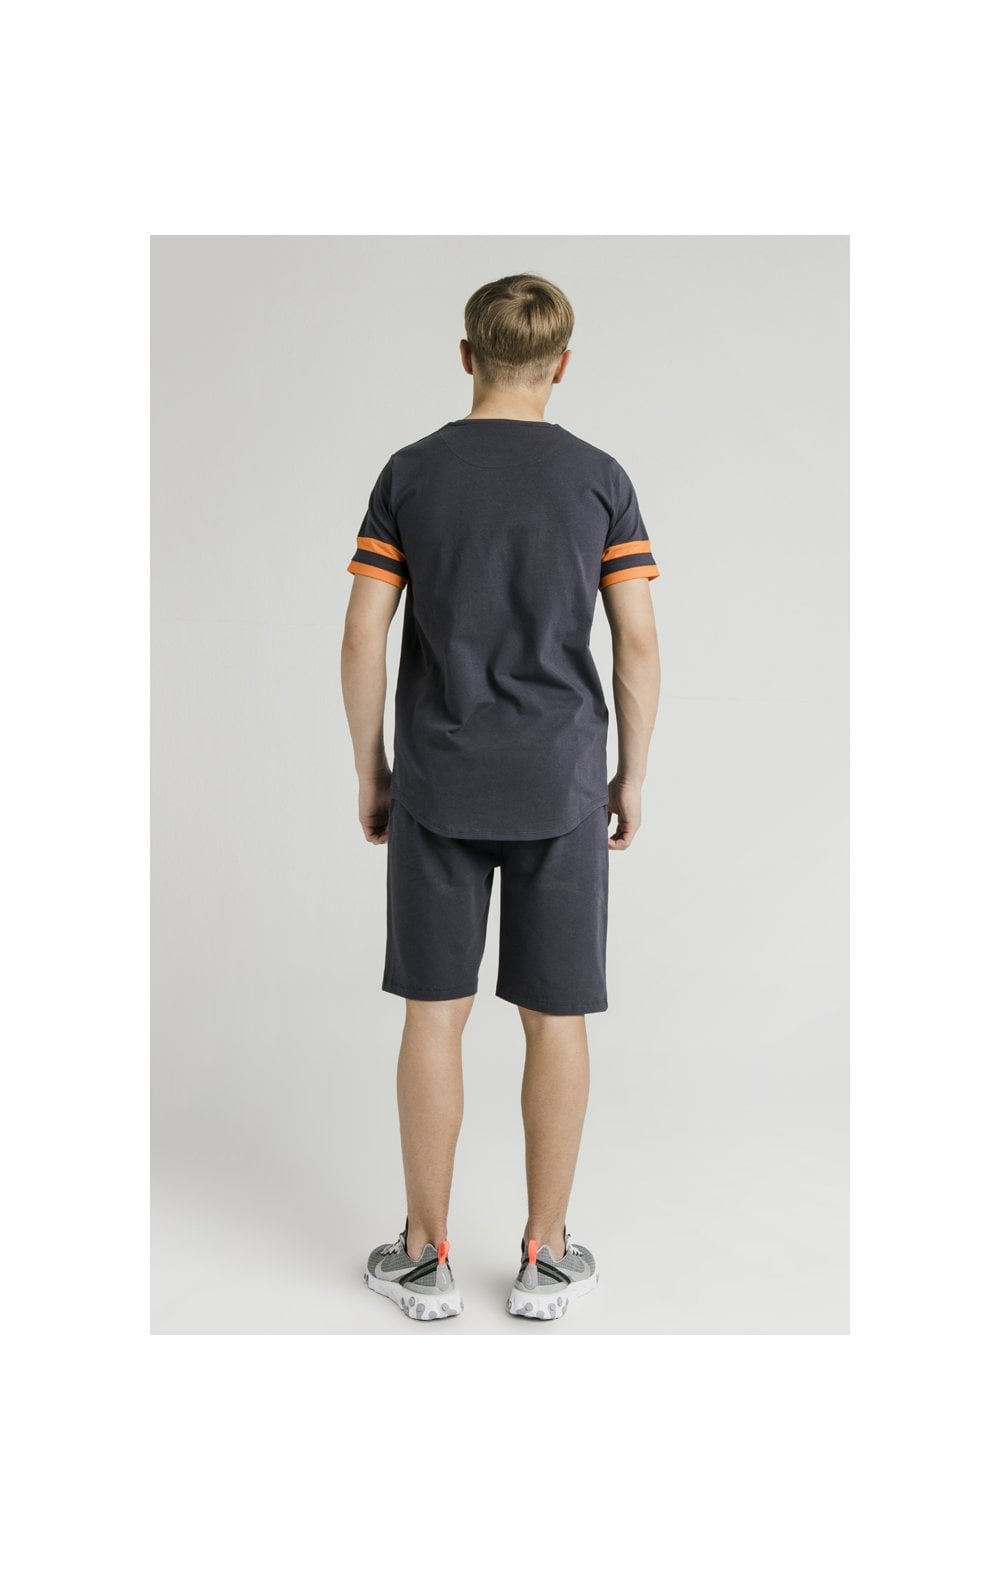 Load image into Gallery viewer, Illusive London Jersey Shorts – Grey & Orange (5)